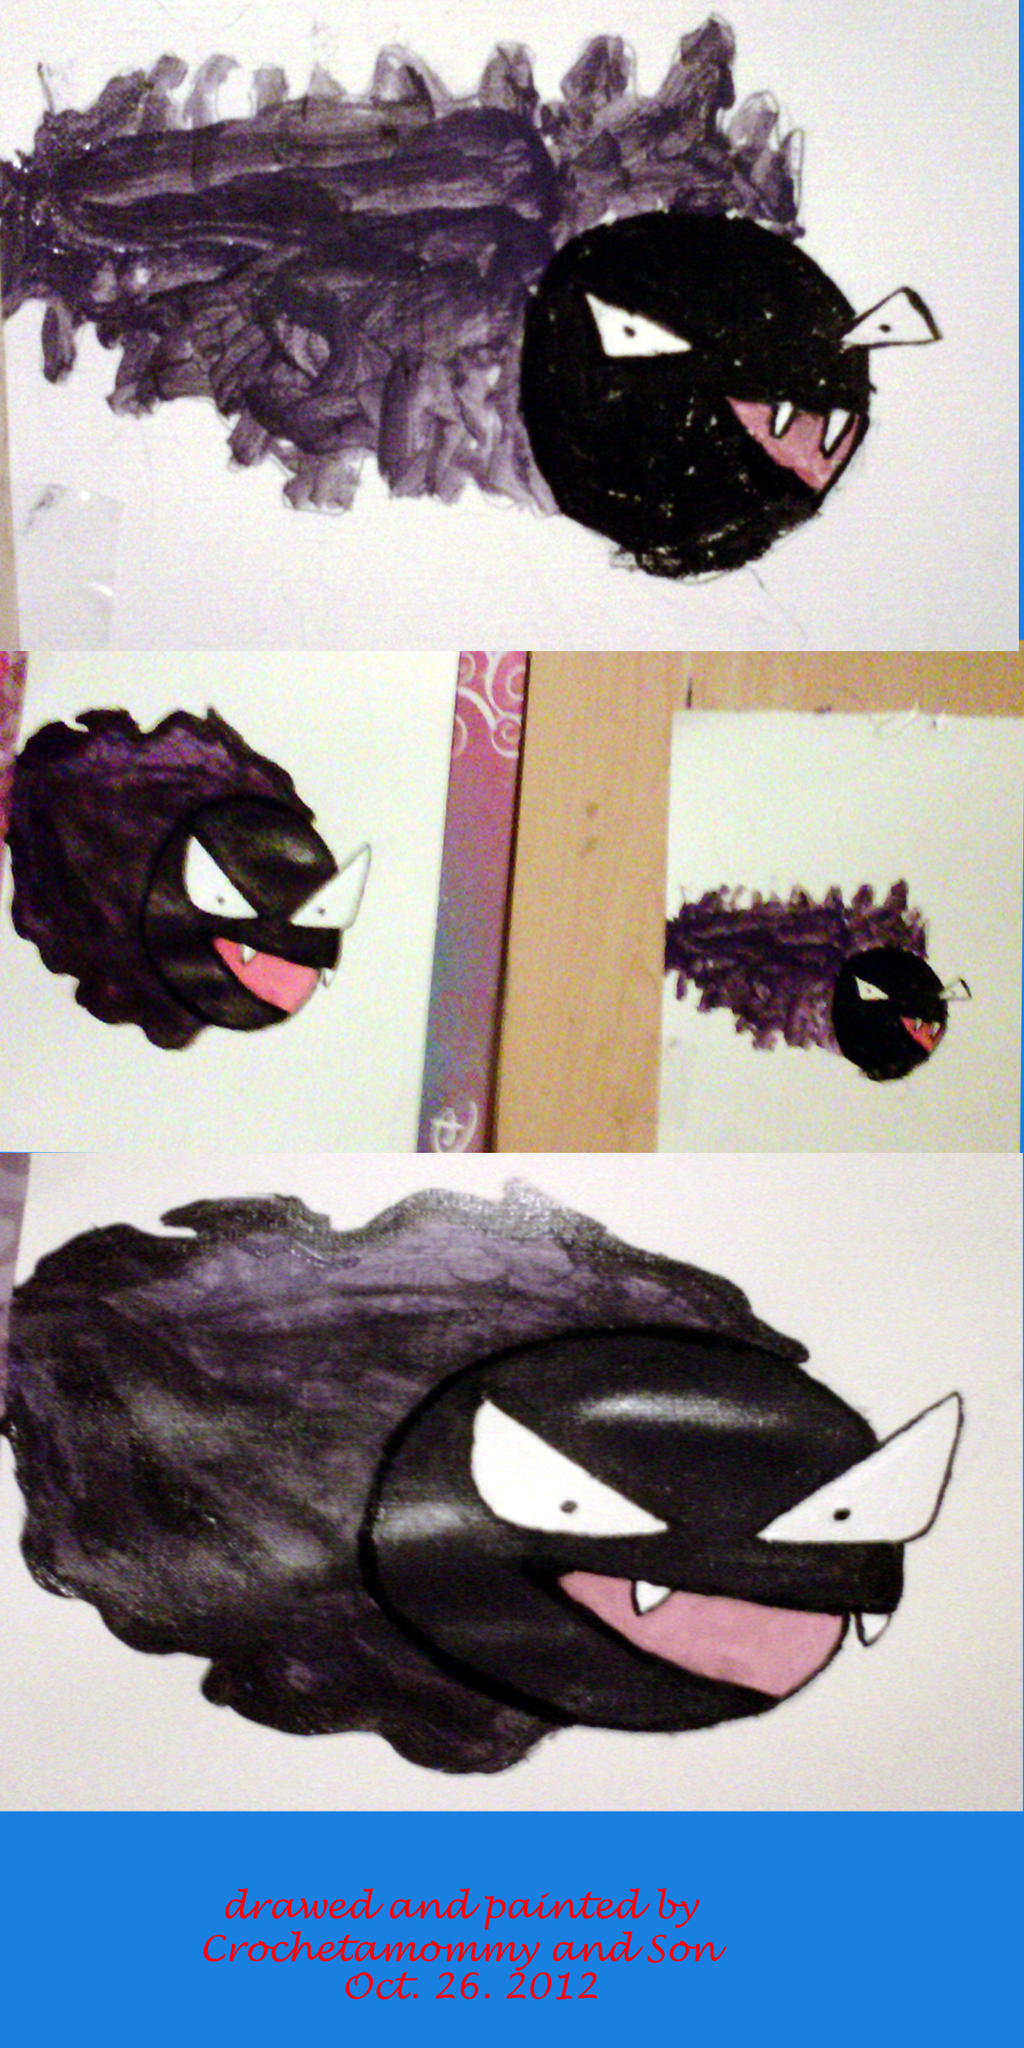 Gastly by crochetamommy